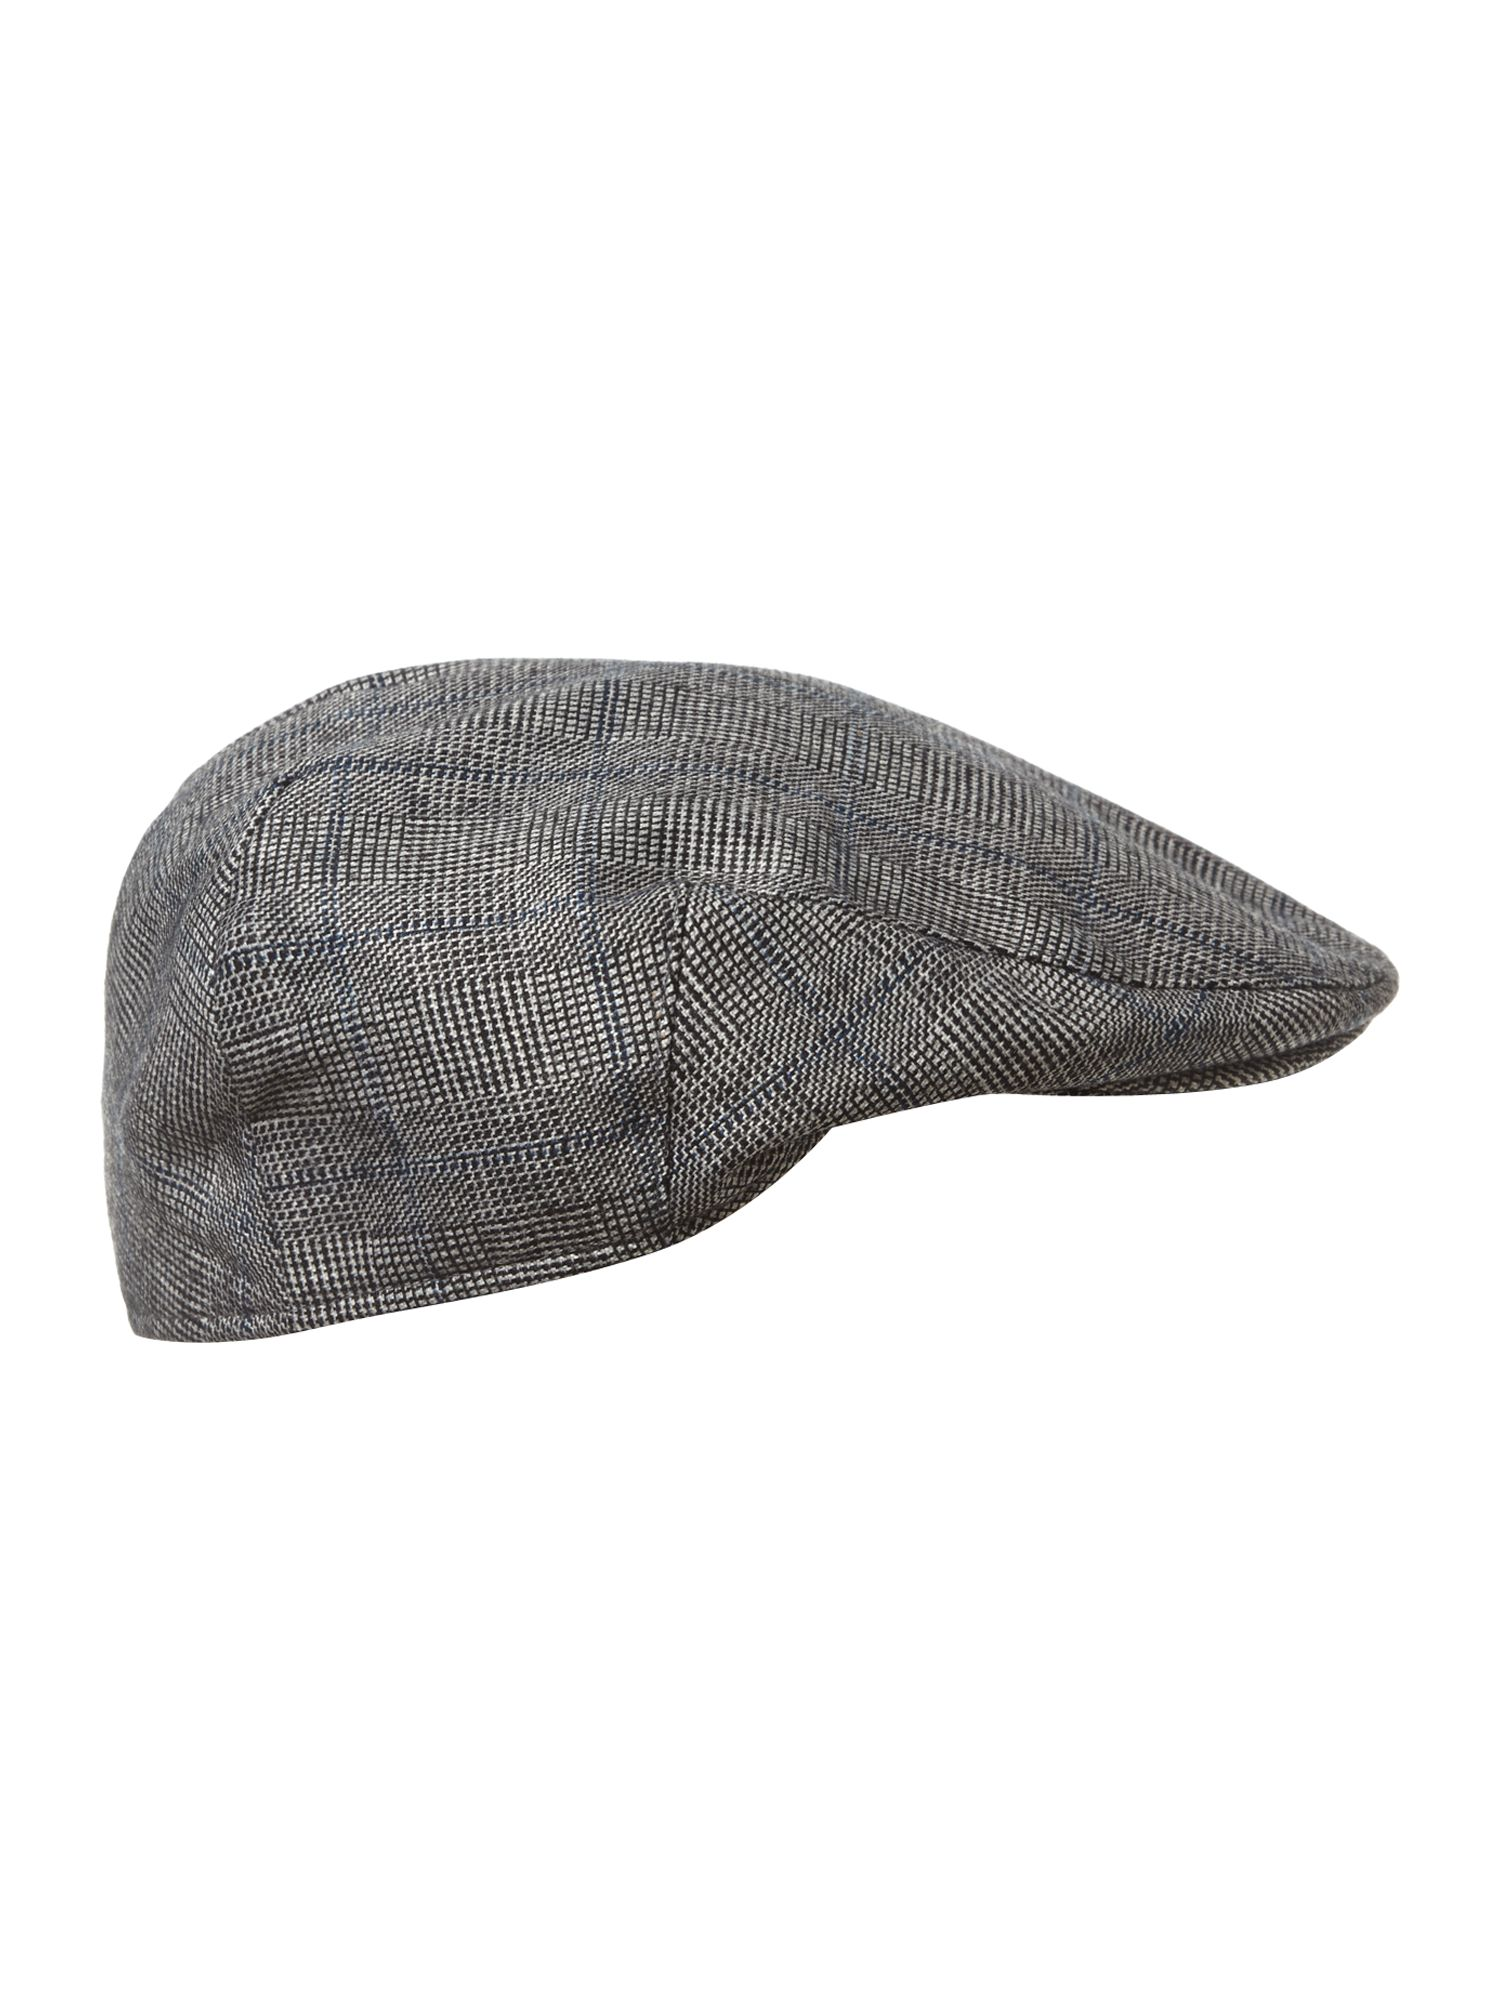 Checked flatcap